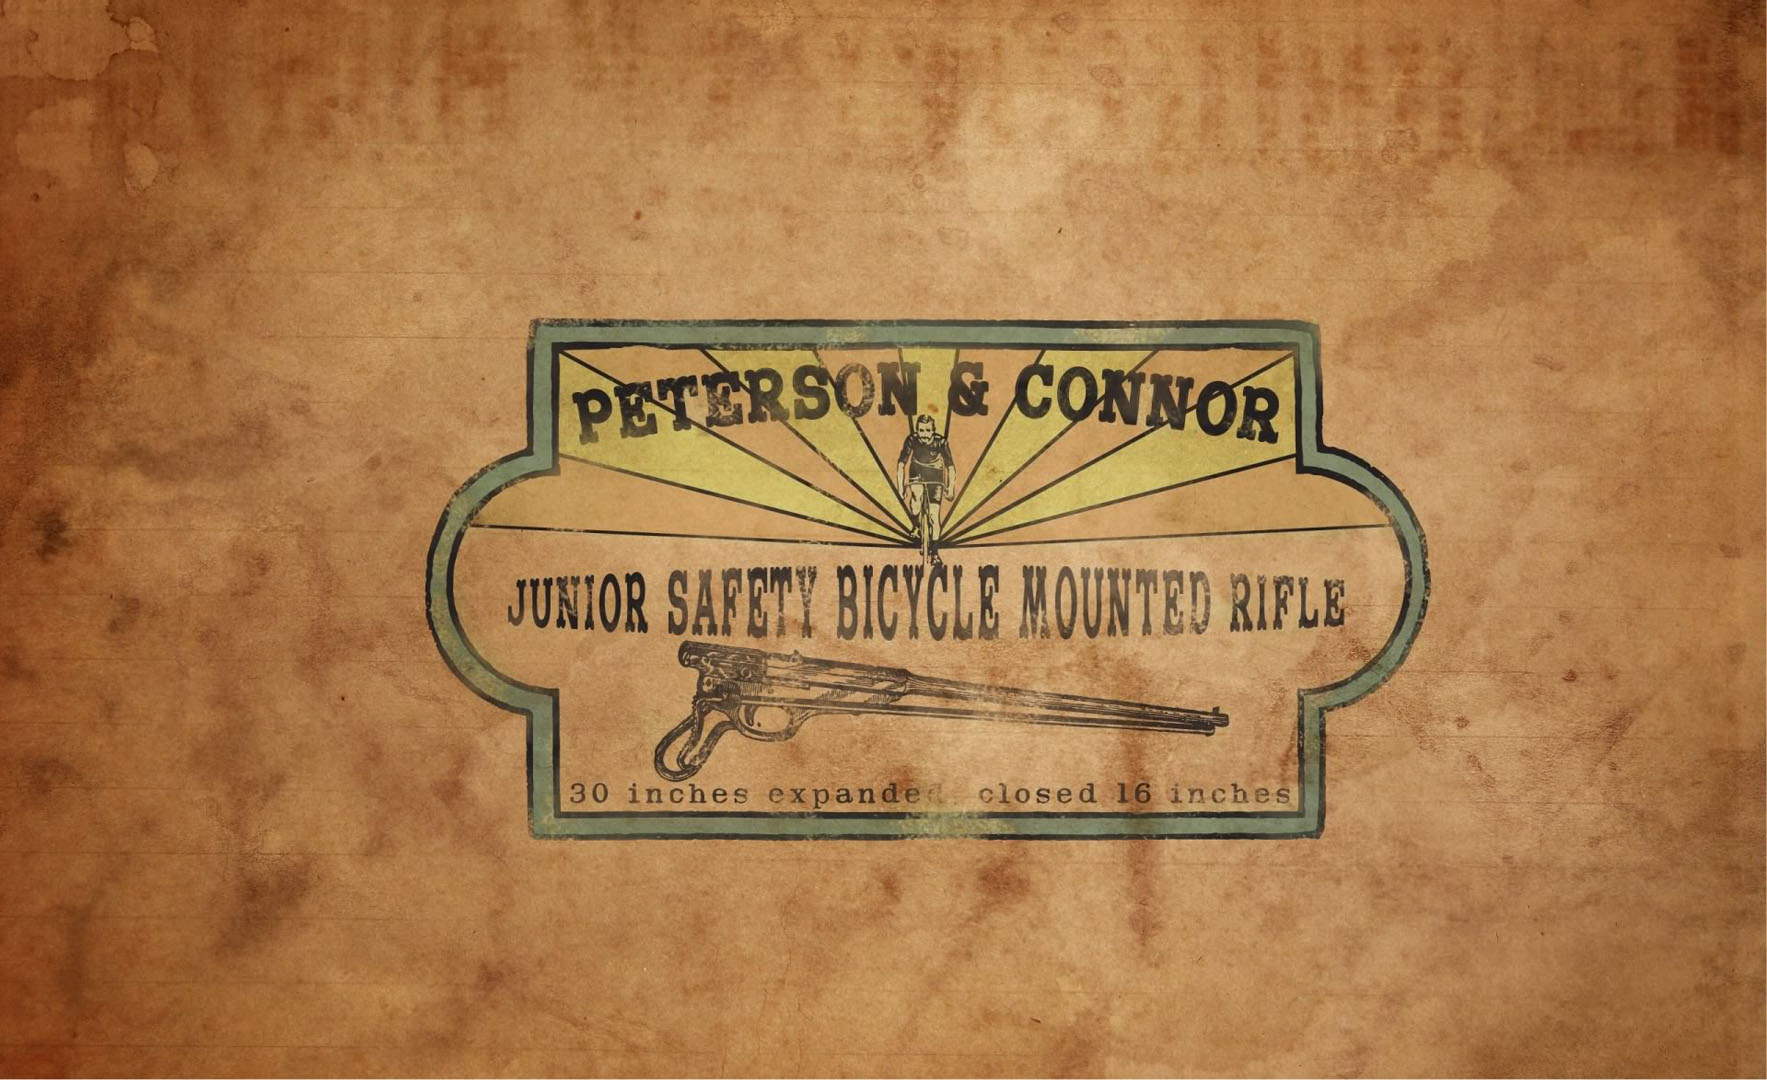 Peterson And Conner Bicycle Mounted Rifle Advert